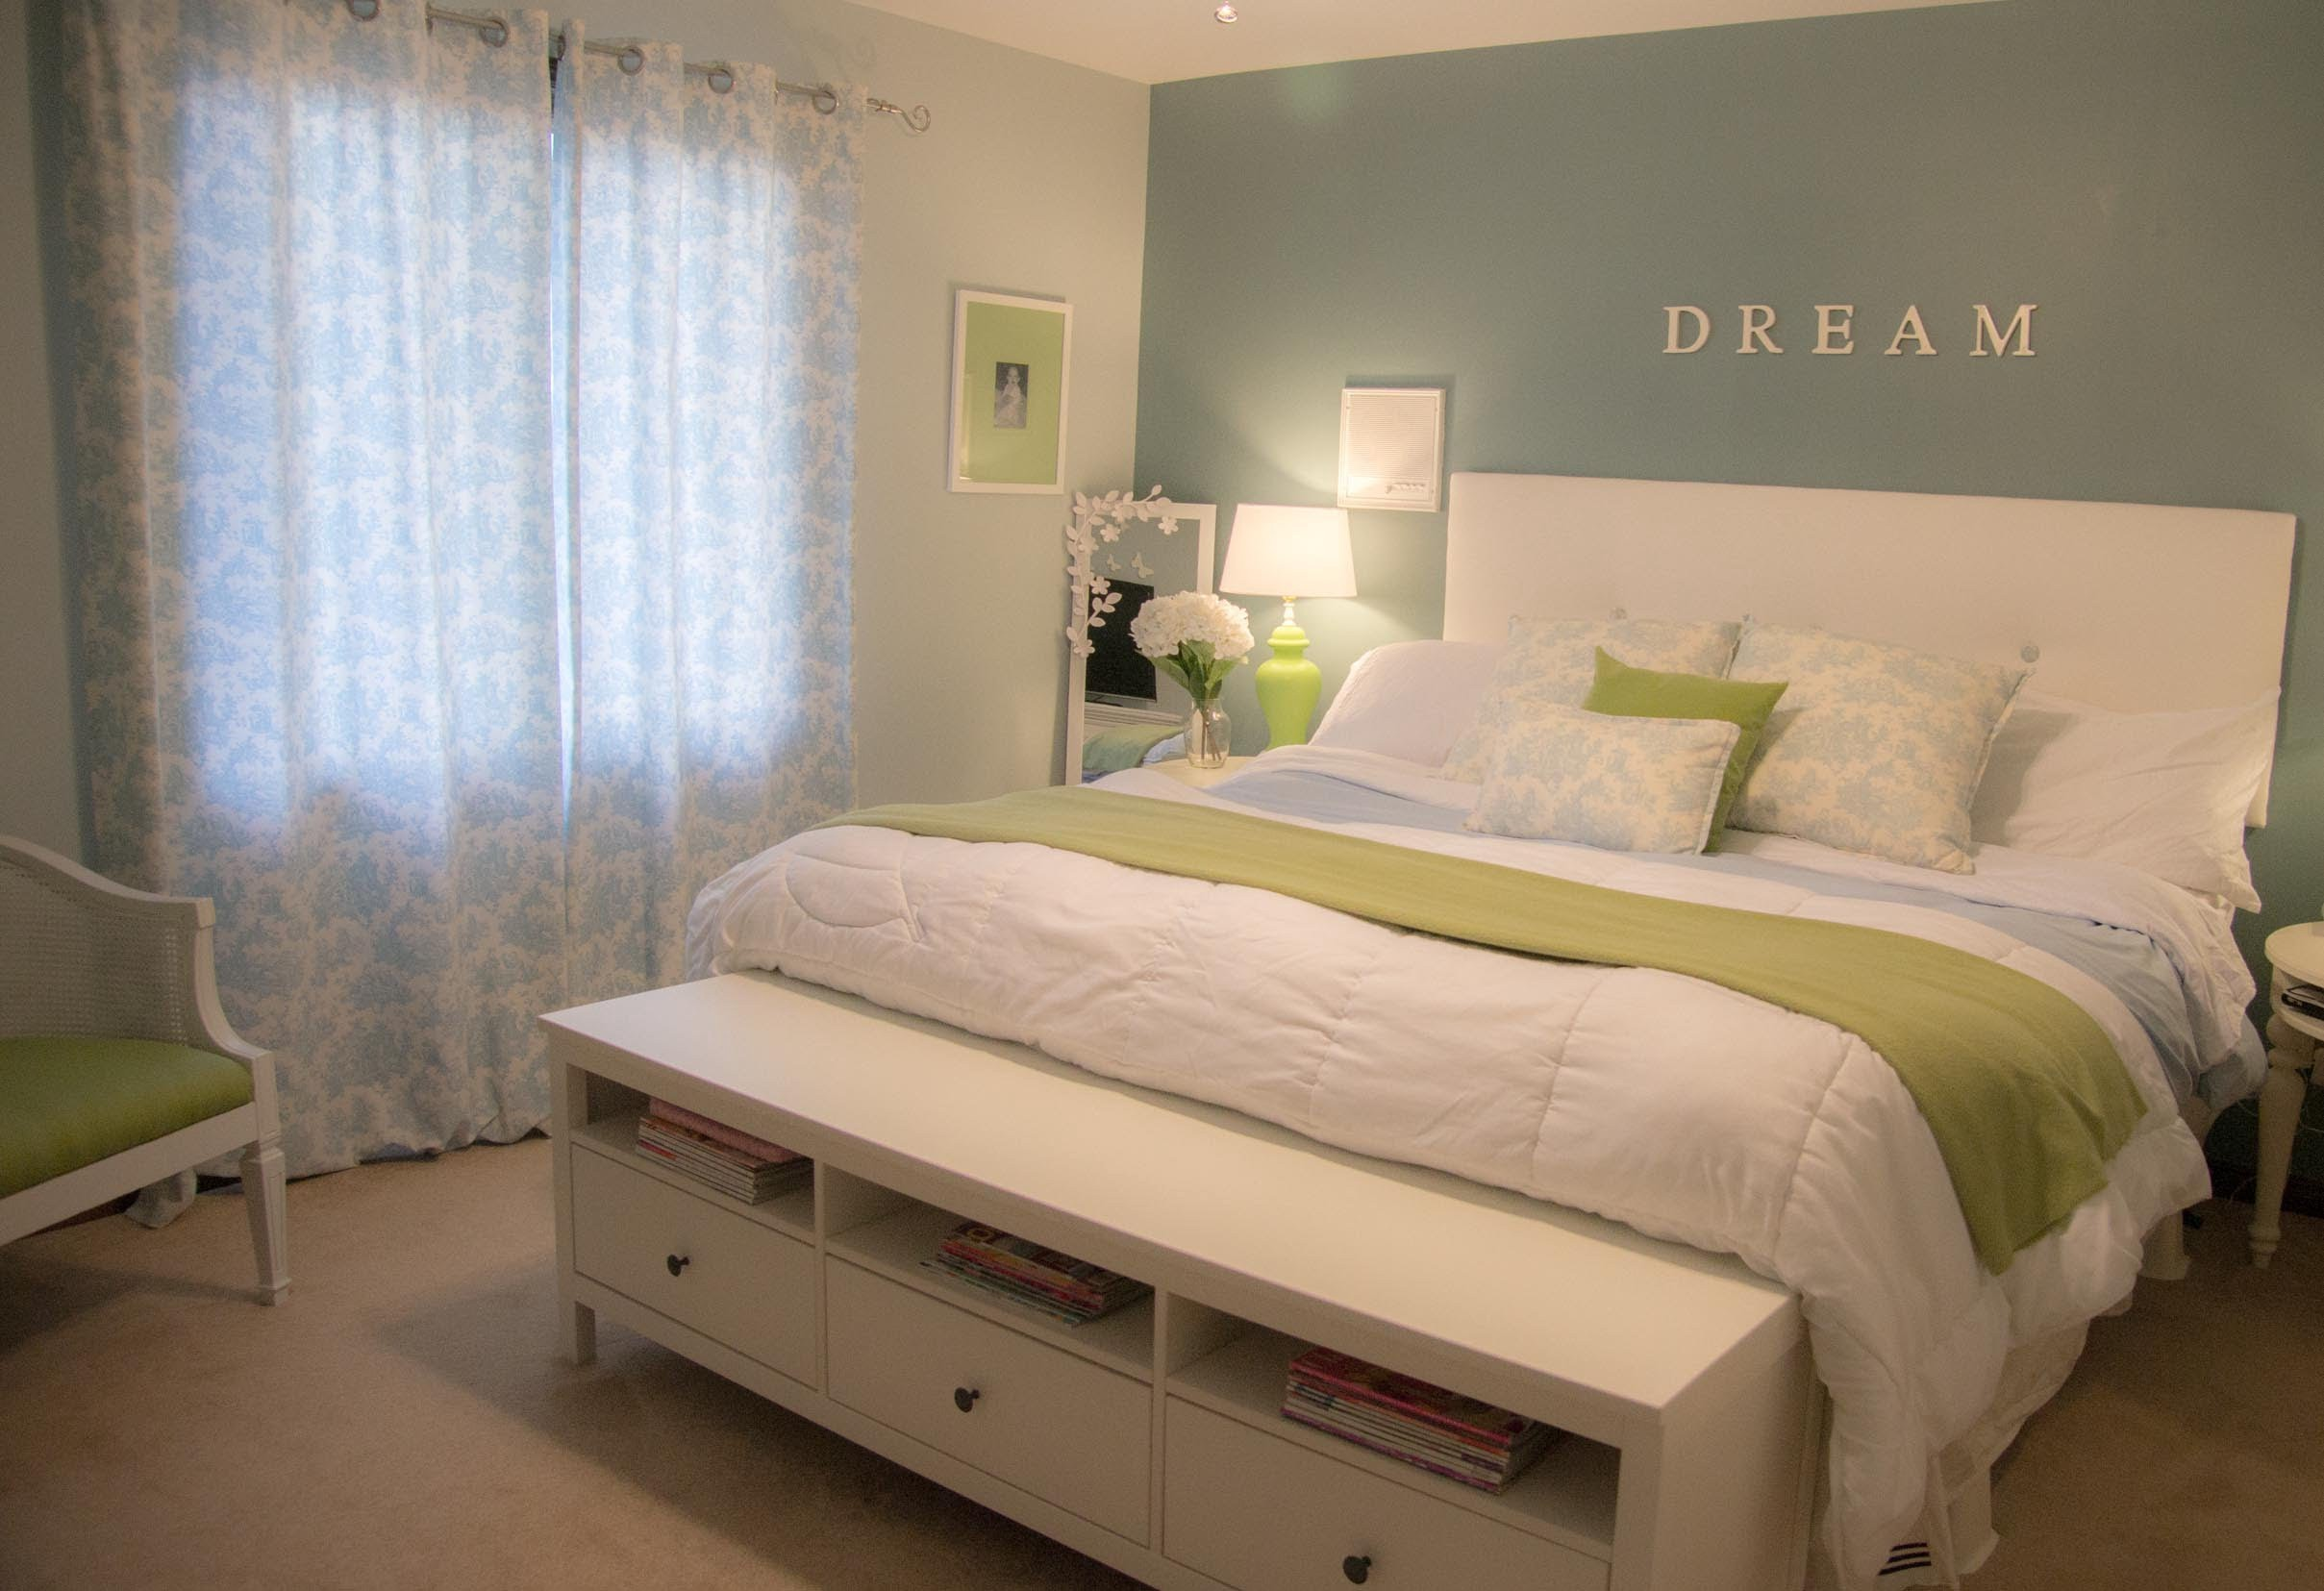 how to decorate my bedroom |putra sulung | medium